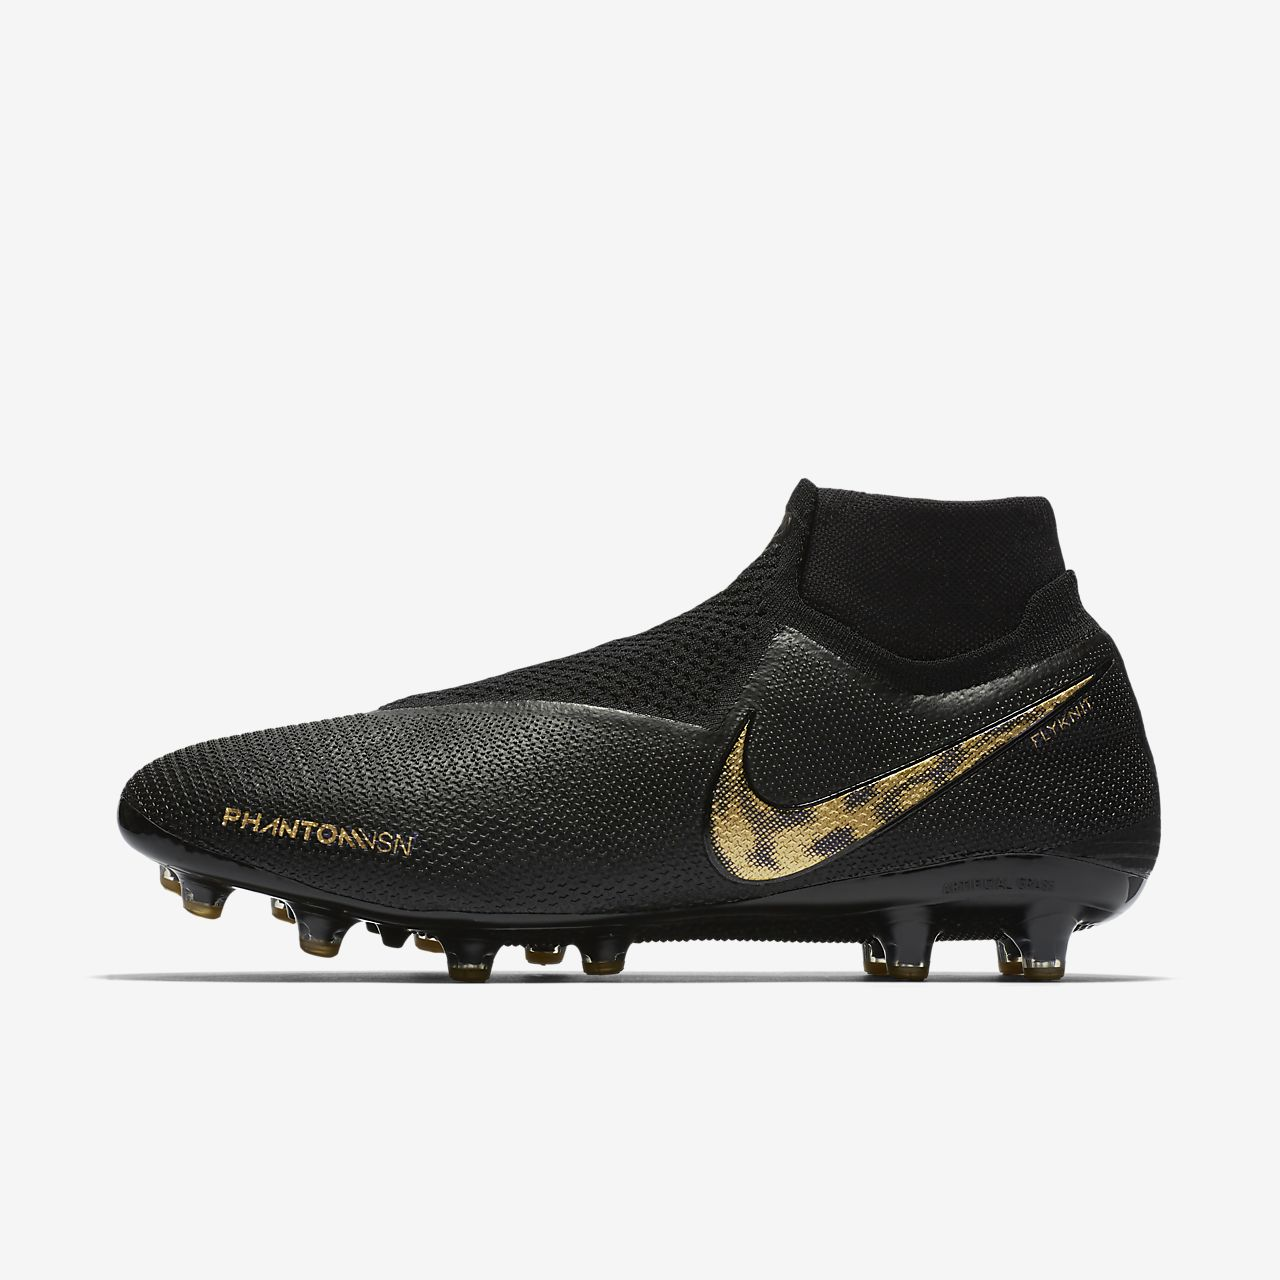 6b5b9e05f Artificial-Grass Football Boot. Nike Phantom Vision Elite Dynamic Fit AG-PRO